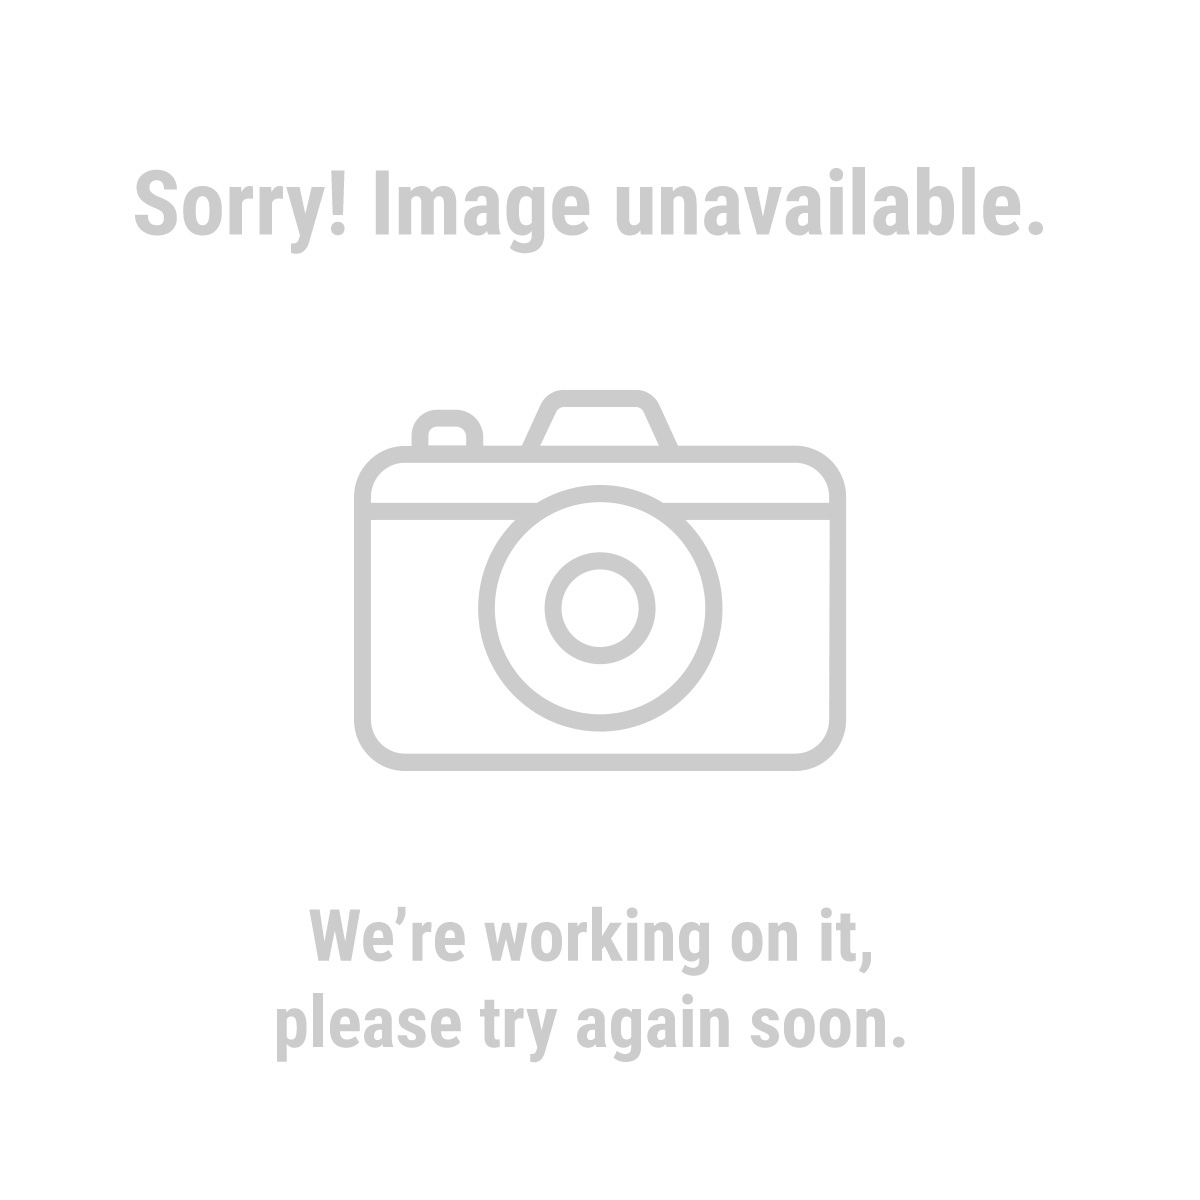 30415 Polypropylene Gloves, 6 Pair